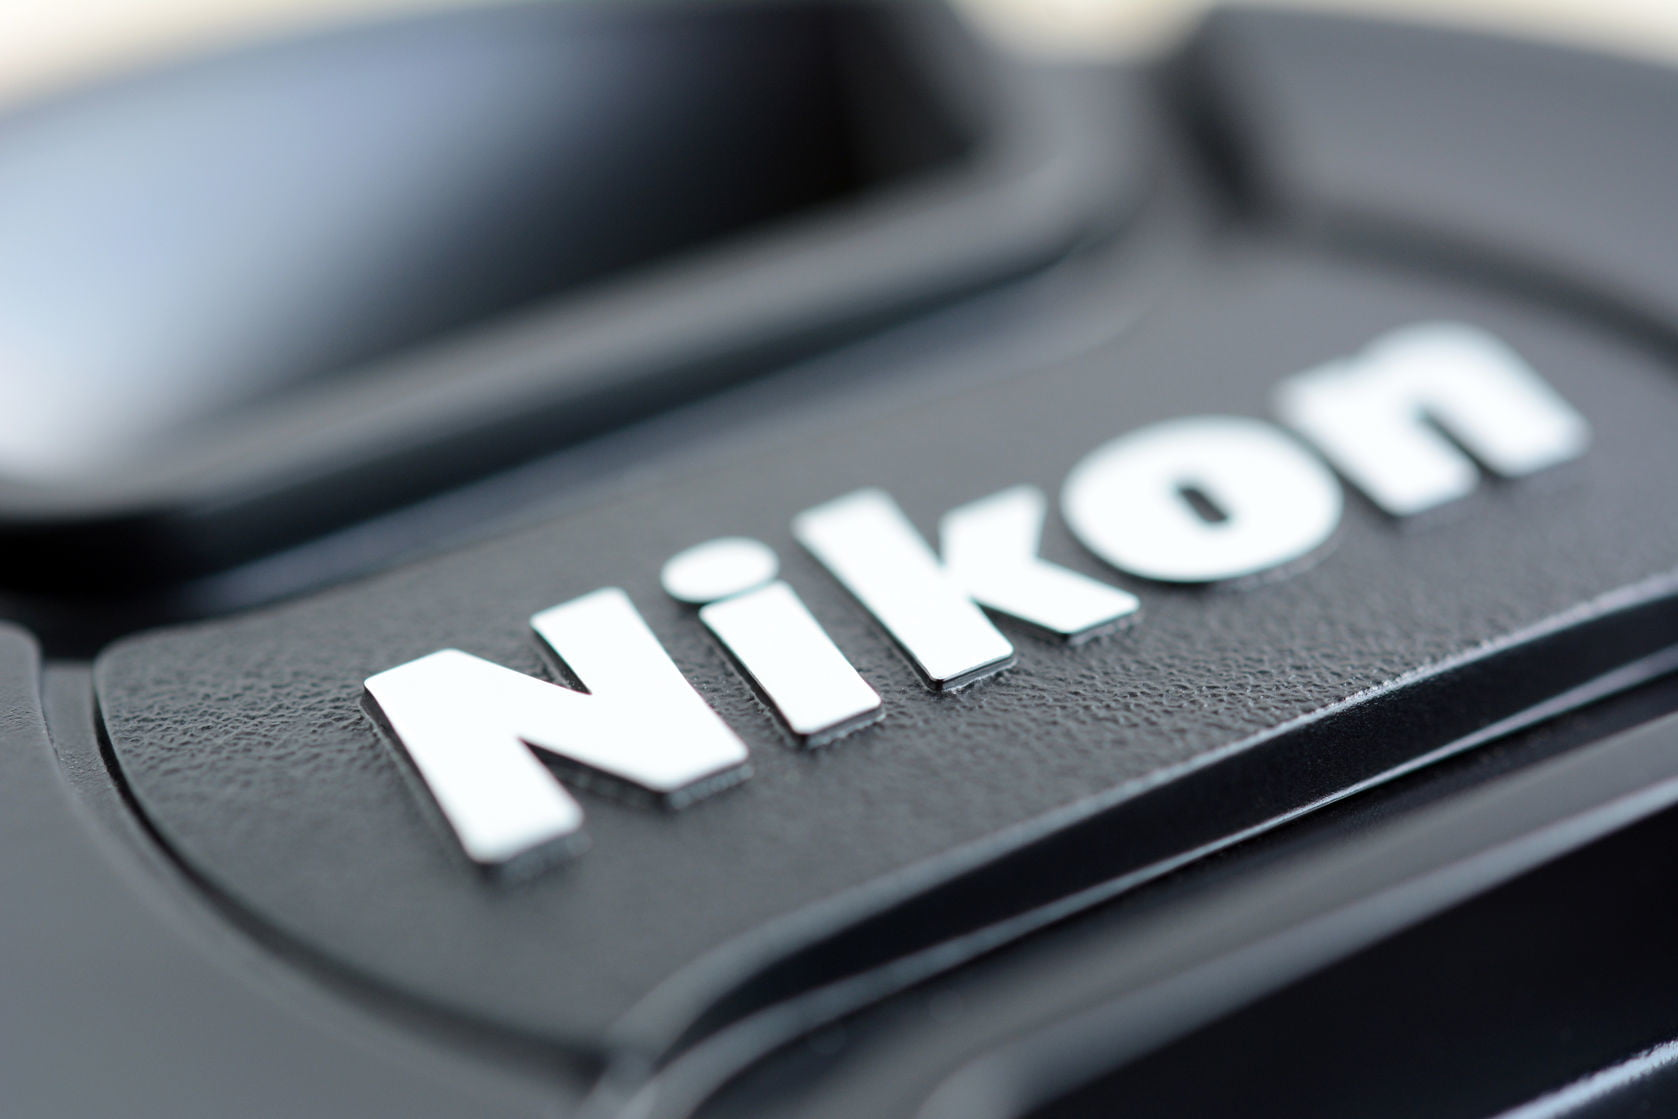 The best Nikon cameras, from DSLRs to superzooms